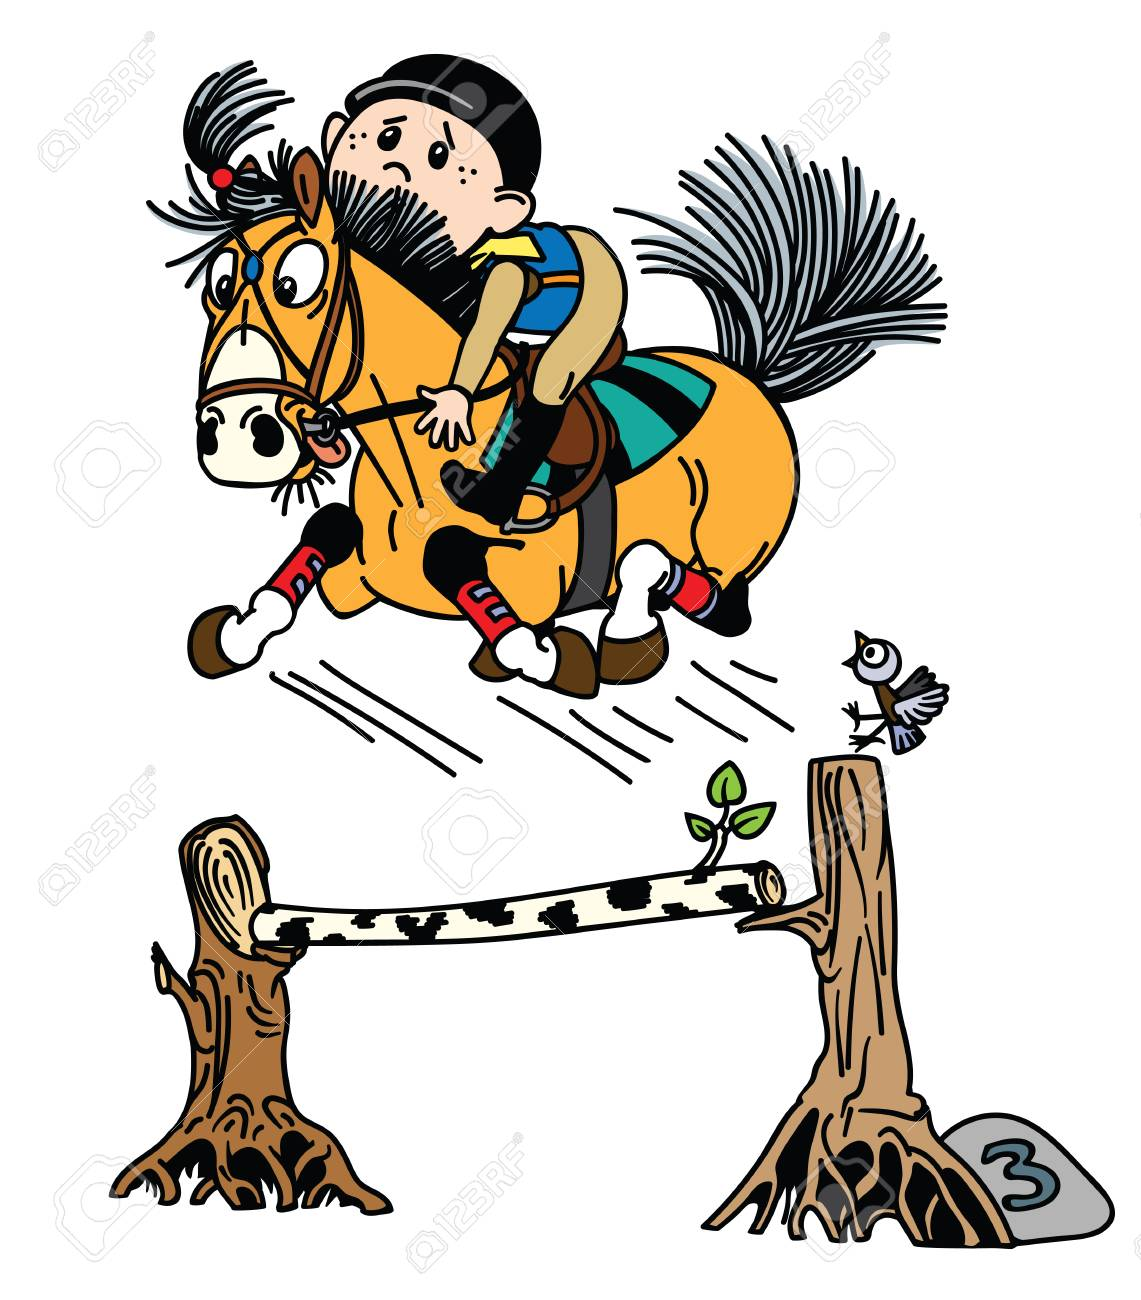 Cartoon Boy Training His Pony Horse Jumping Over Obstacle Funny Royalty Free Cliparts Vectors And Stock Illustration Image 116481032